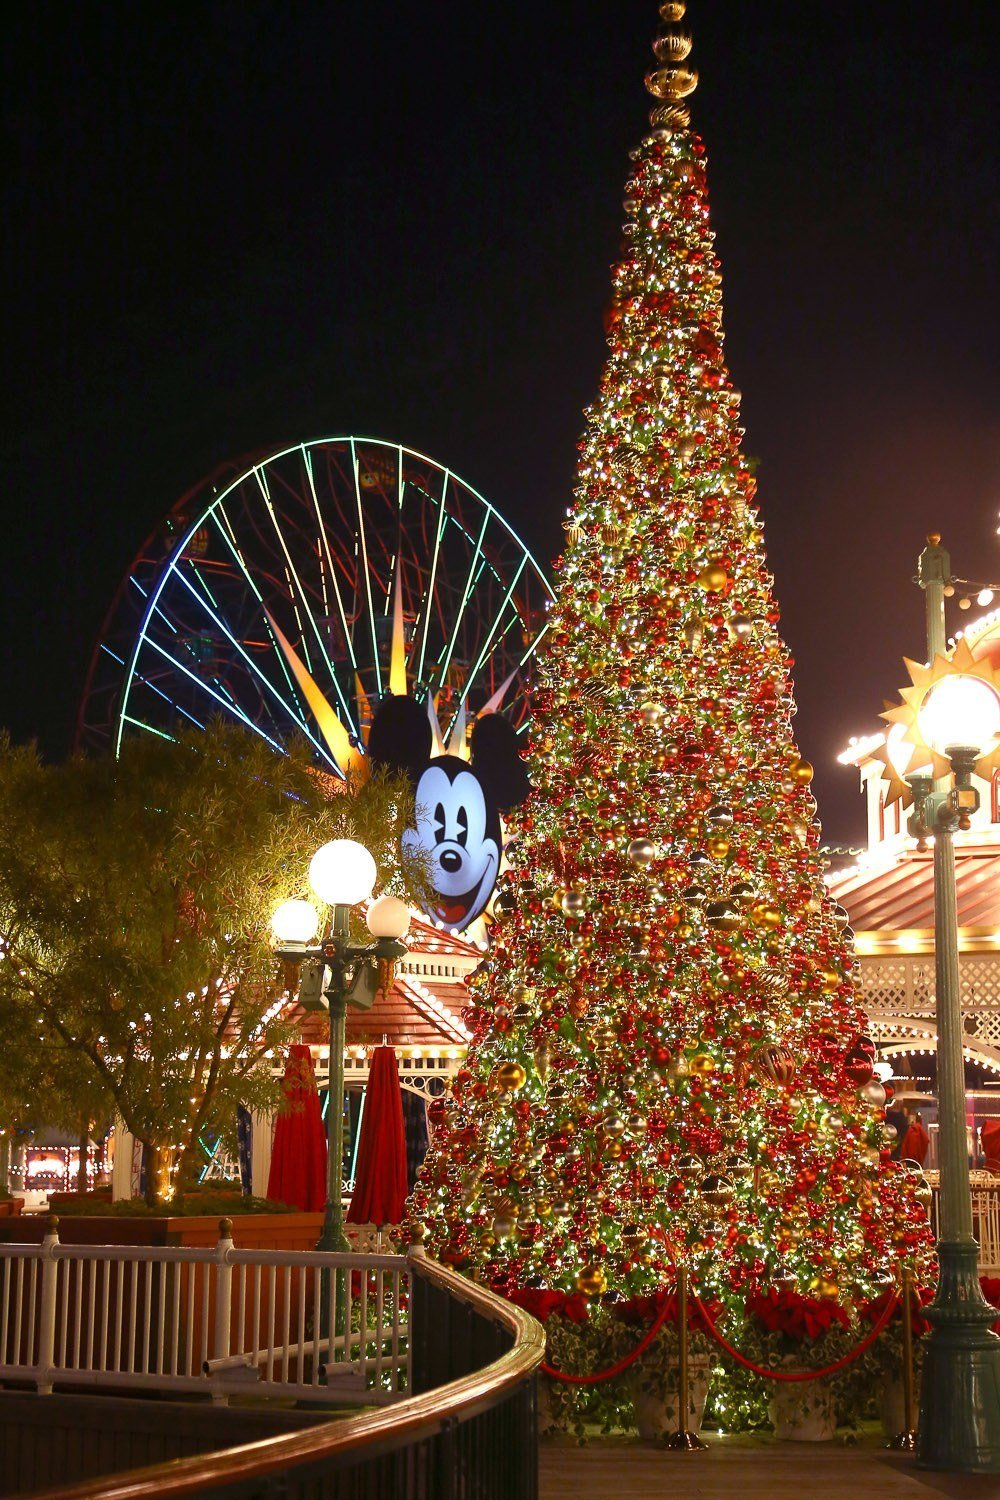 10 reasons to visit disneyland resort during the holidays la jolla mom